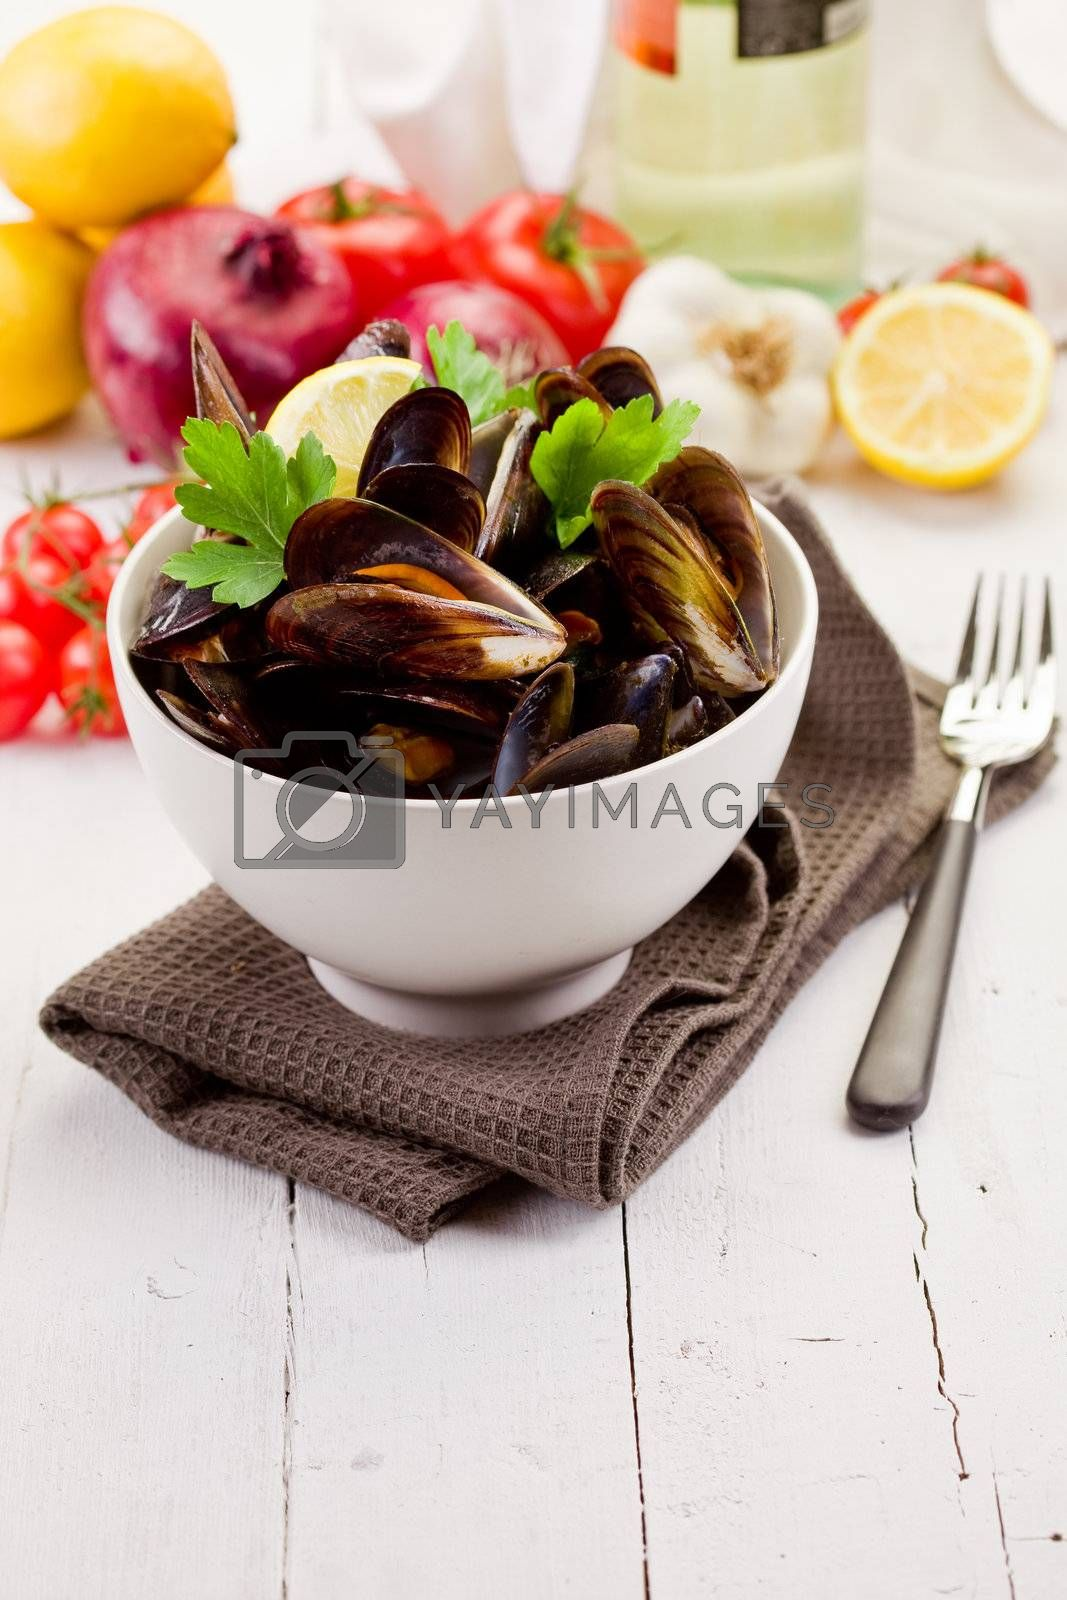 delicious italian fish dish made with mussels and white wine